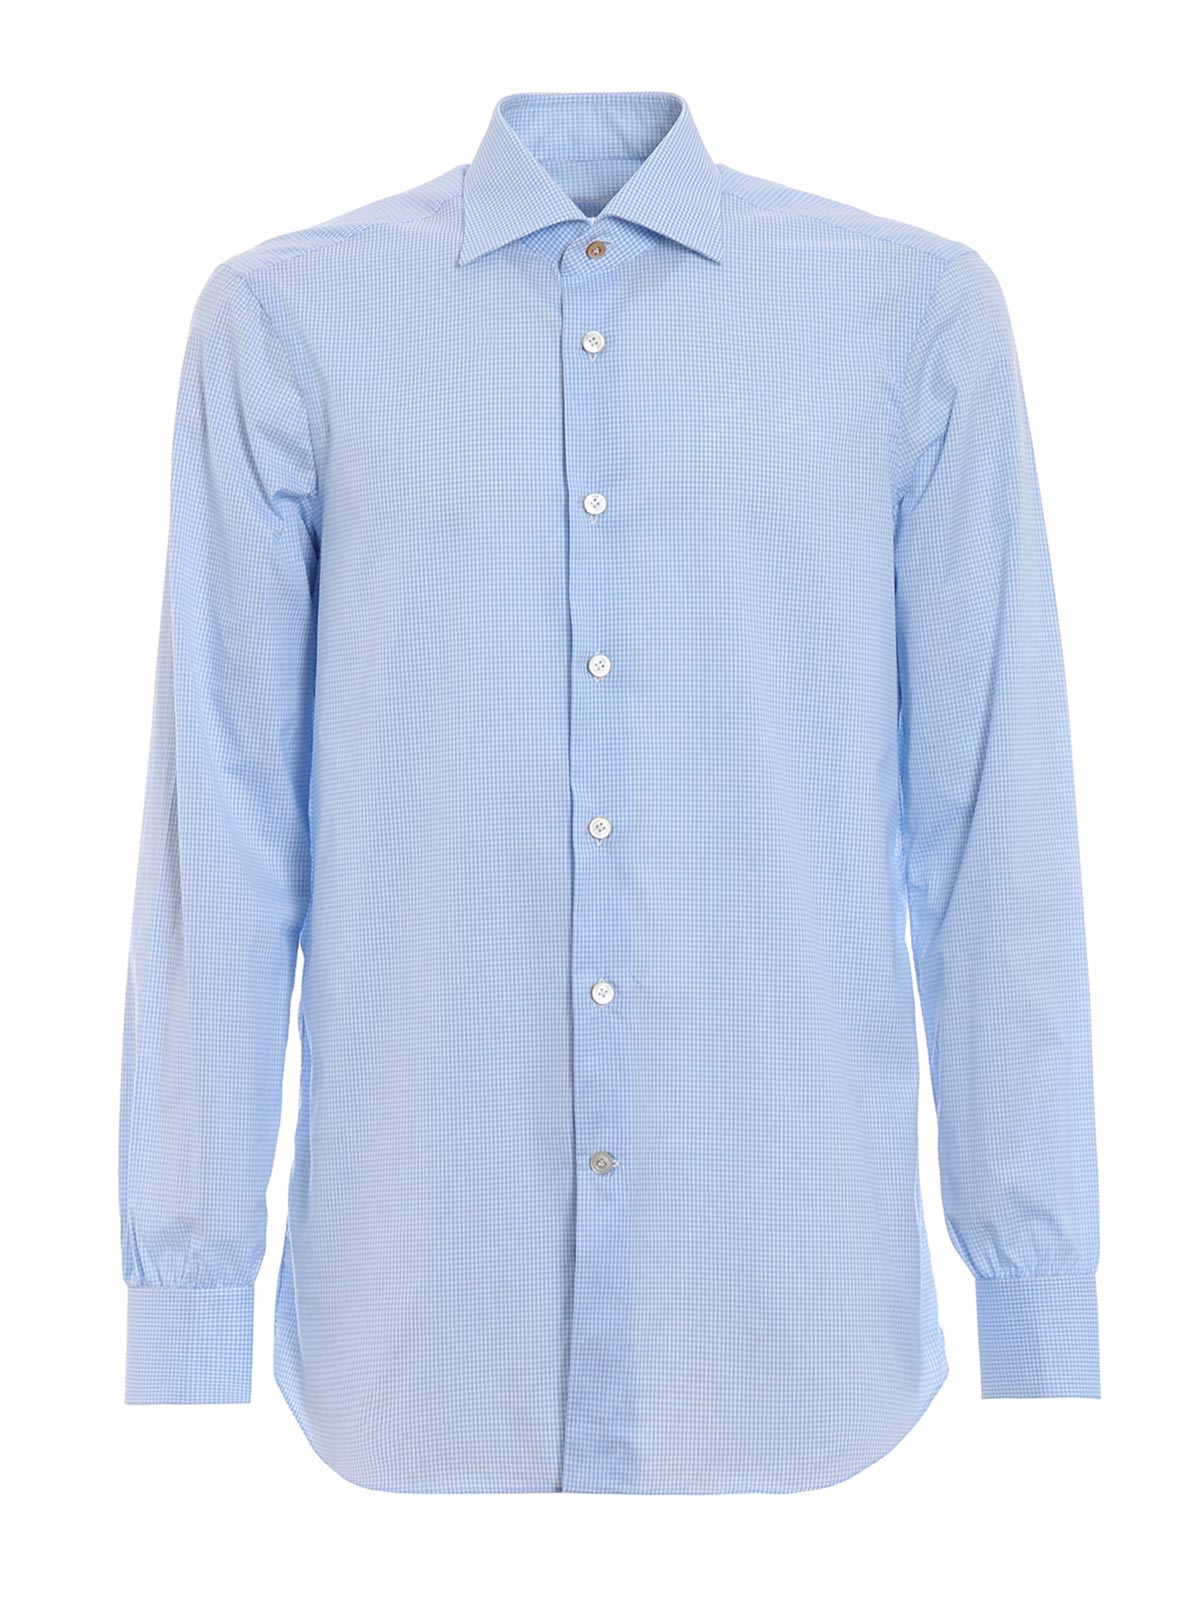 Picture of KITON | Men's Cotton Poplin Shirt